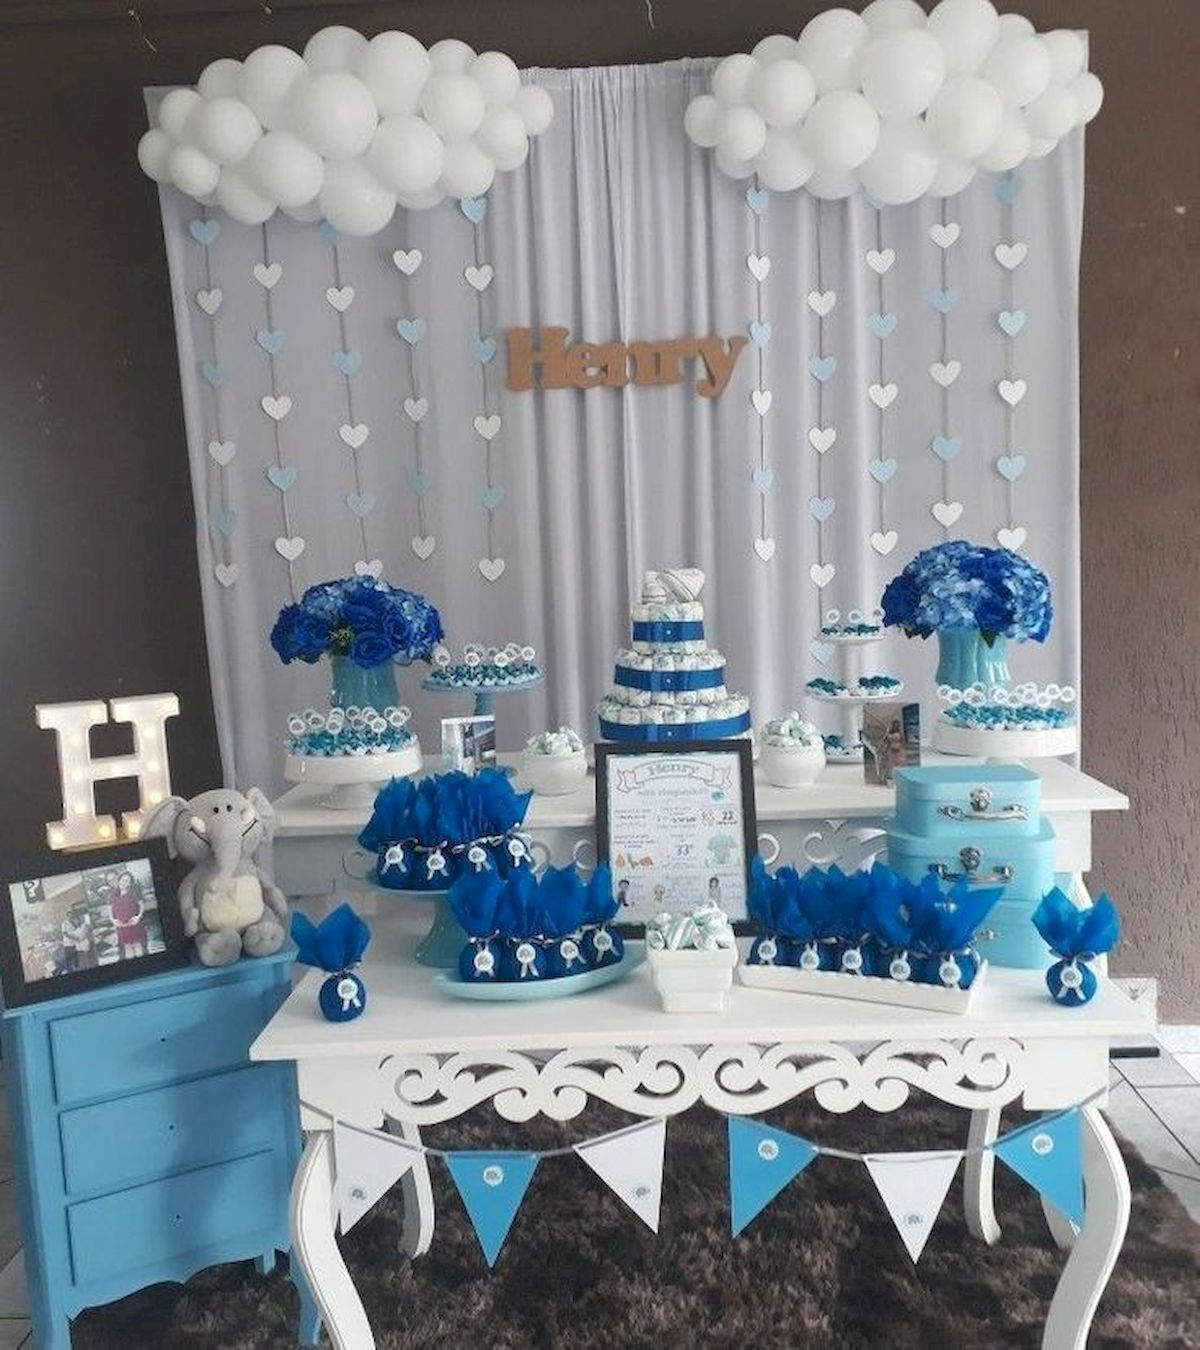 50 Awesome Baby Shower Themes And Decorating Ideas For Boy Baby Shower Balloons Baby Shower Diy Decoracion Baby Shower